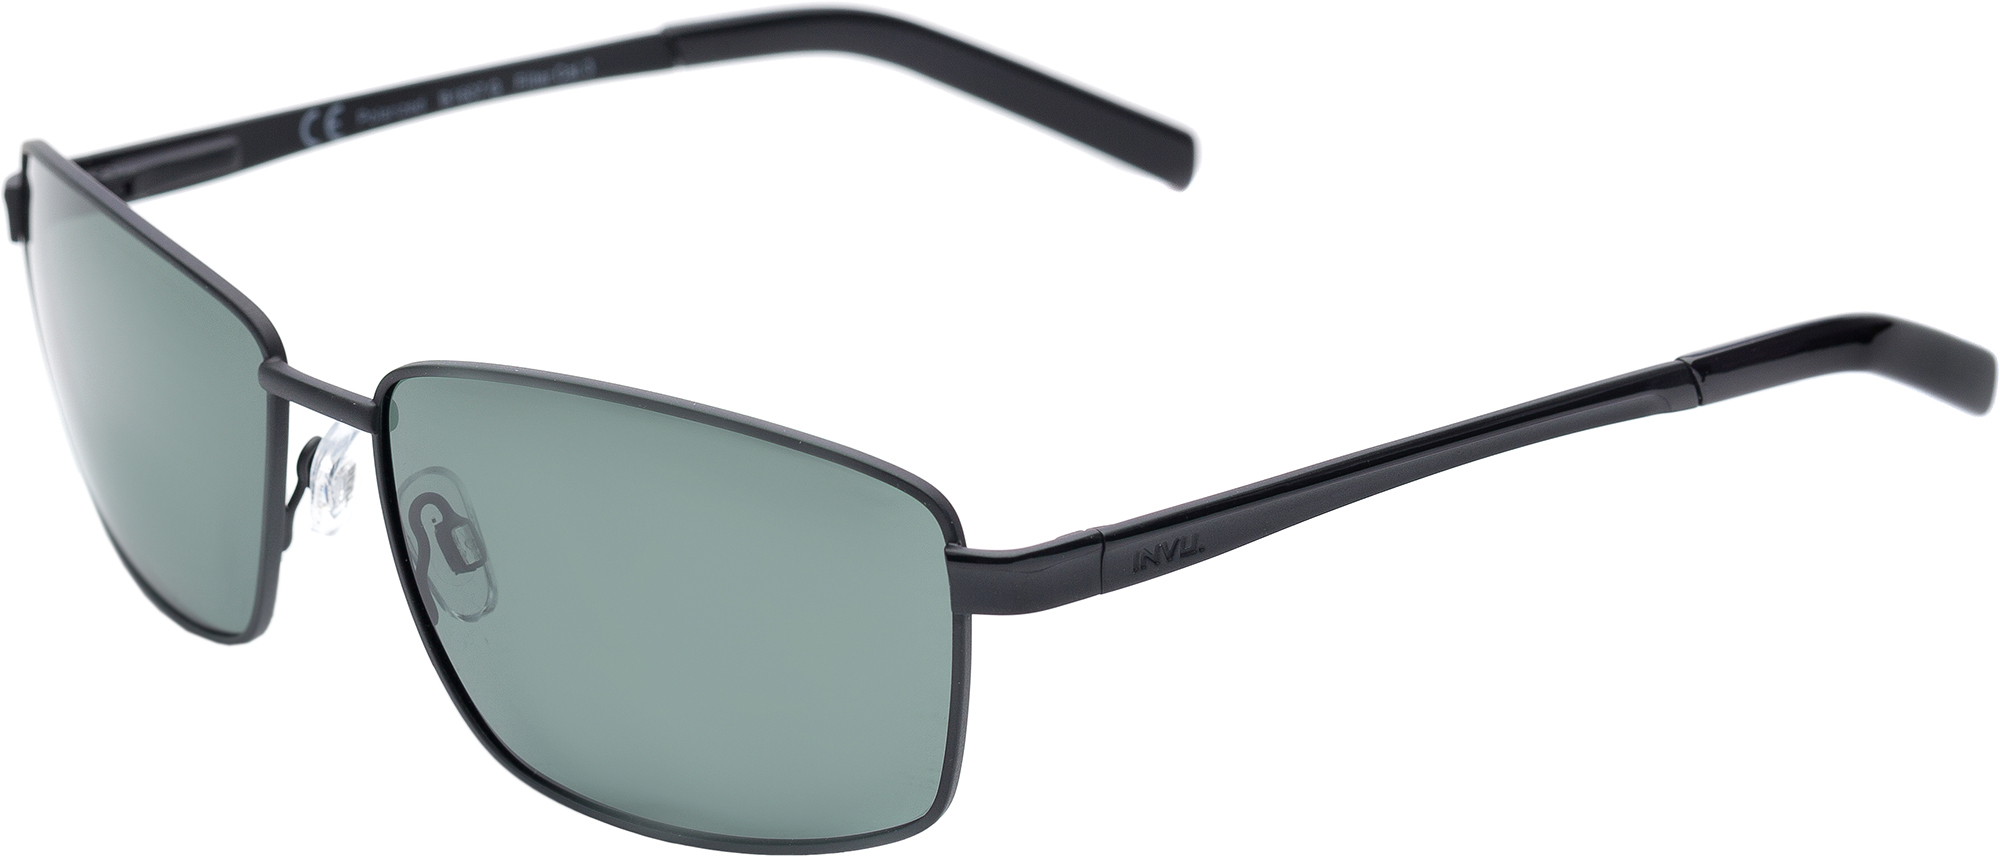 Invu Солнцезащитные очки Invu очки nike optics rabid p matte crystal mercury grey volt green polarized lens